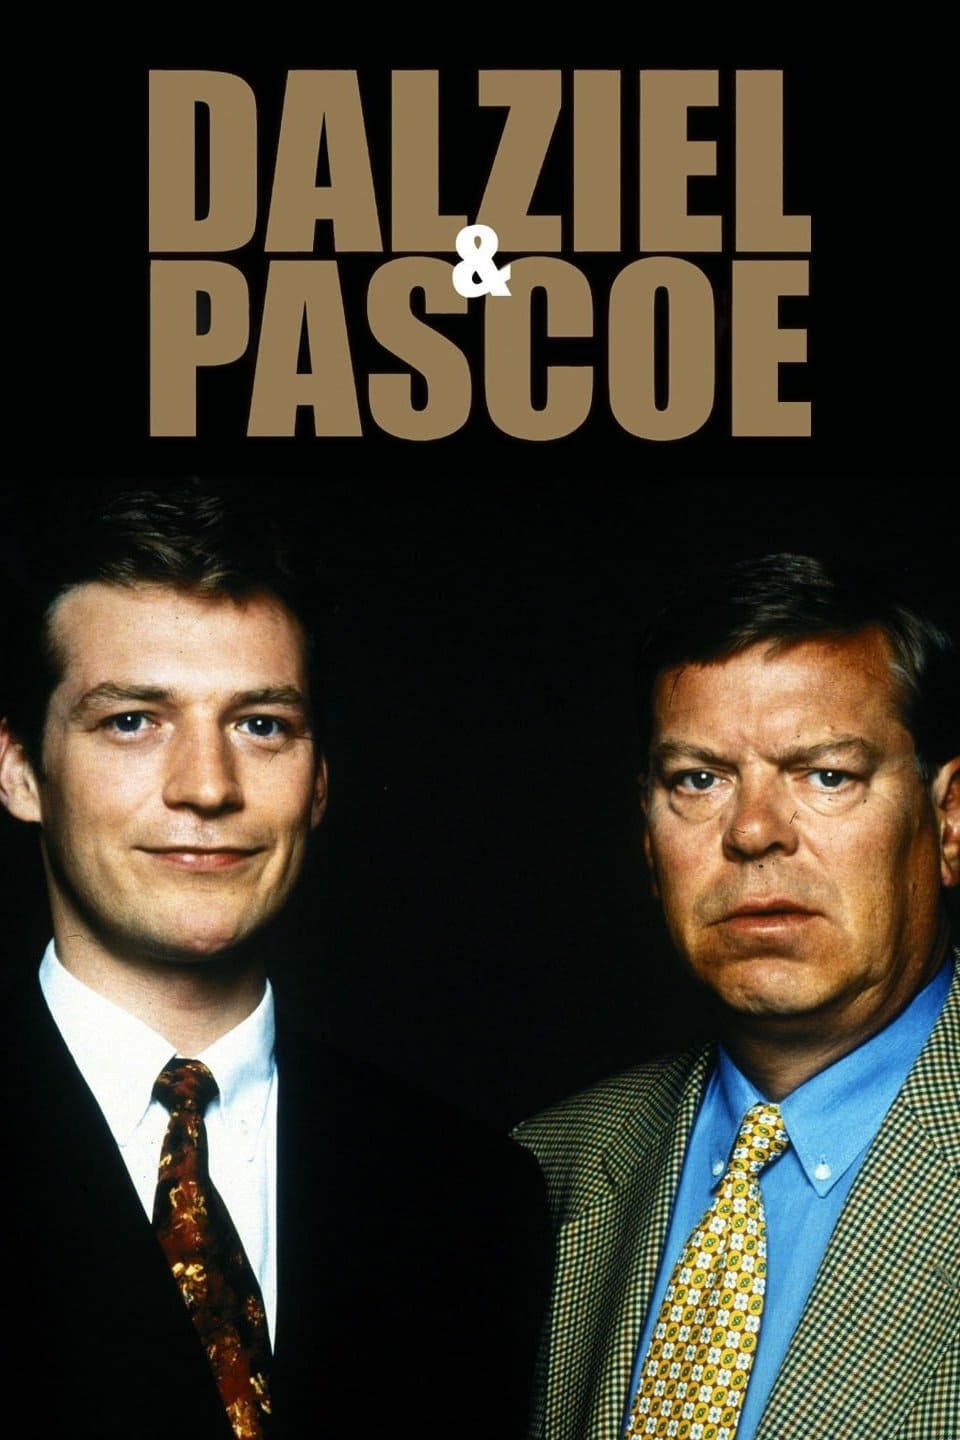 Dalziel and Pascoe TV Shows About Buddy Cop